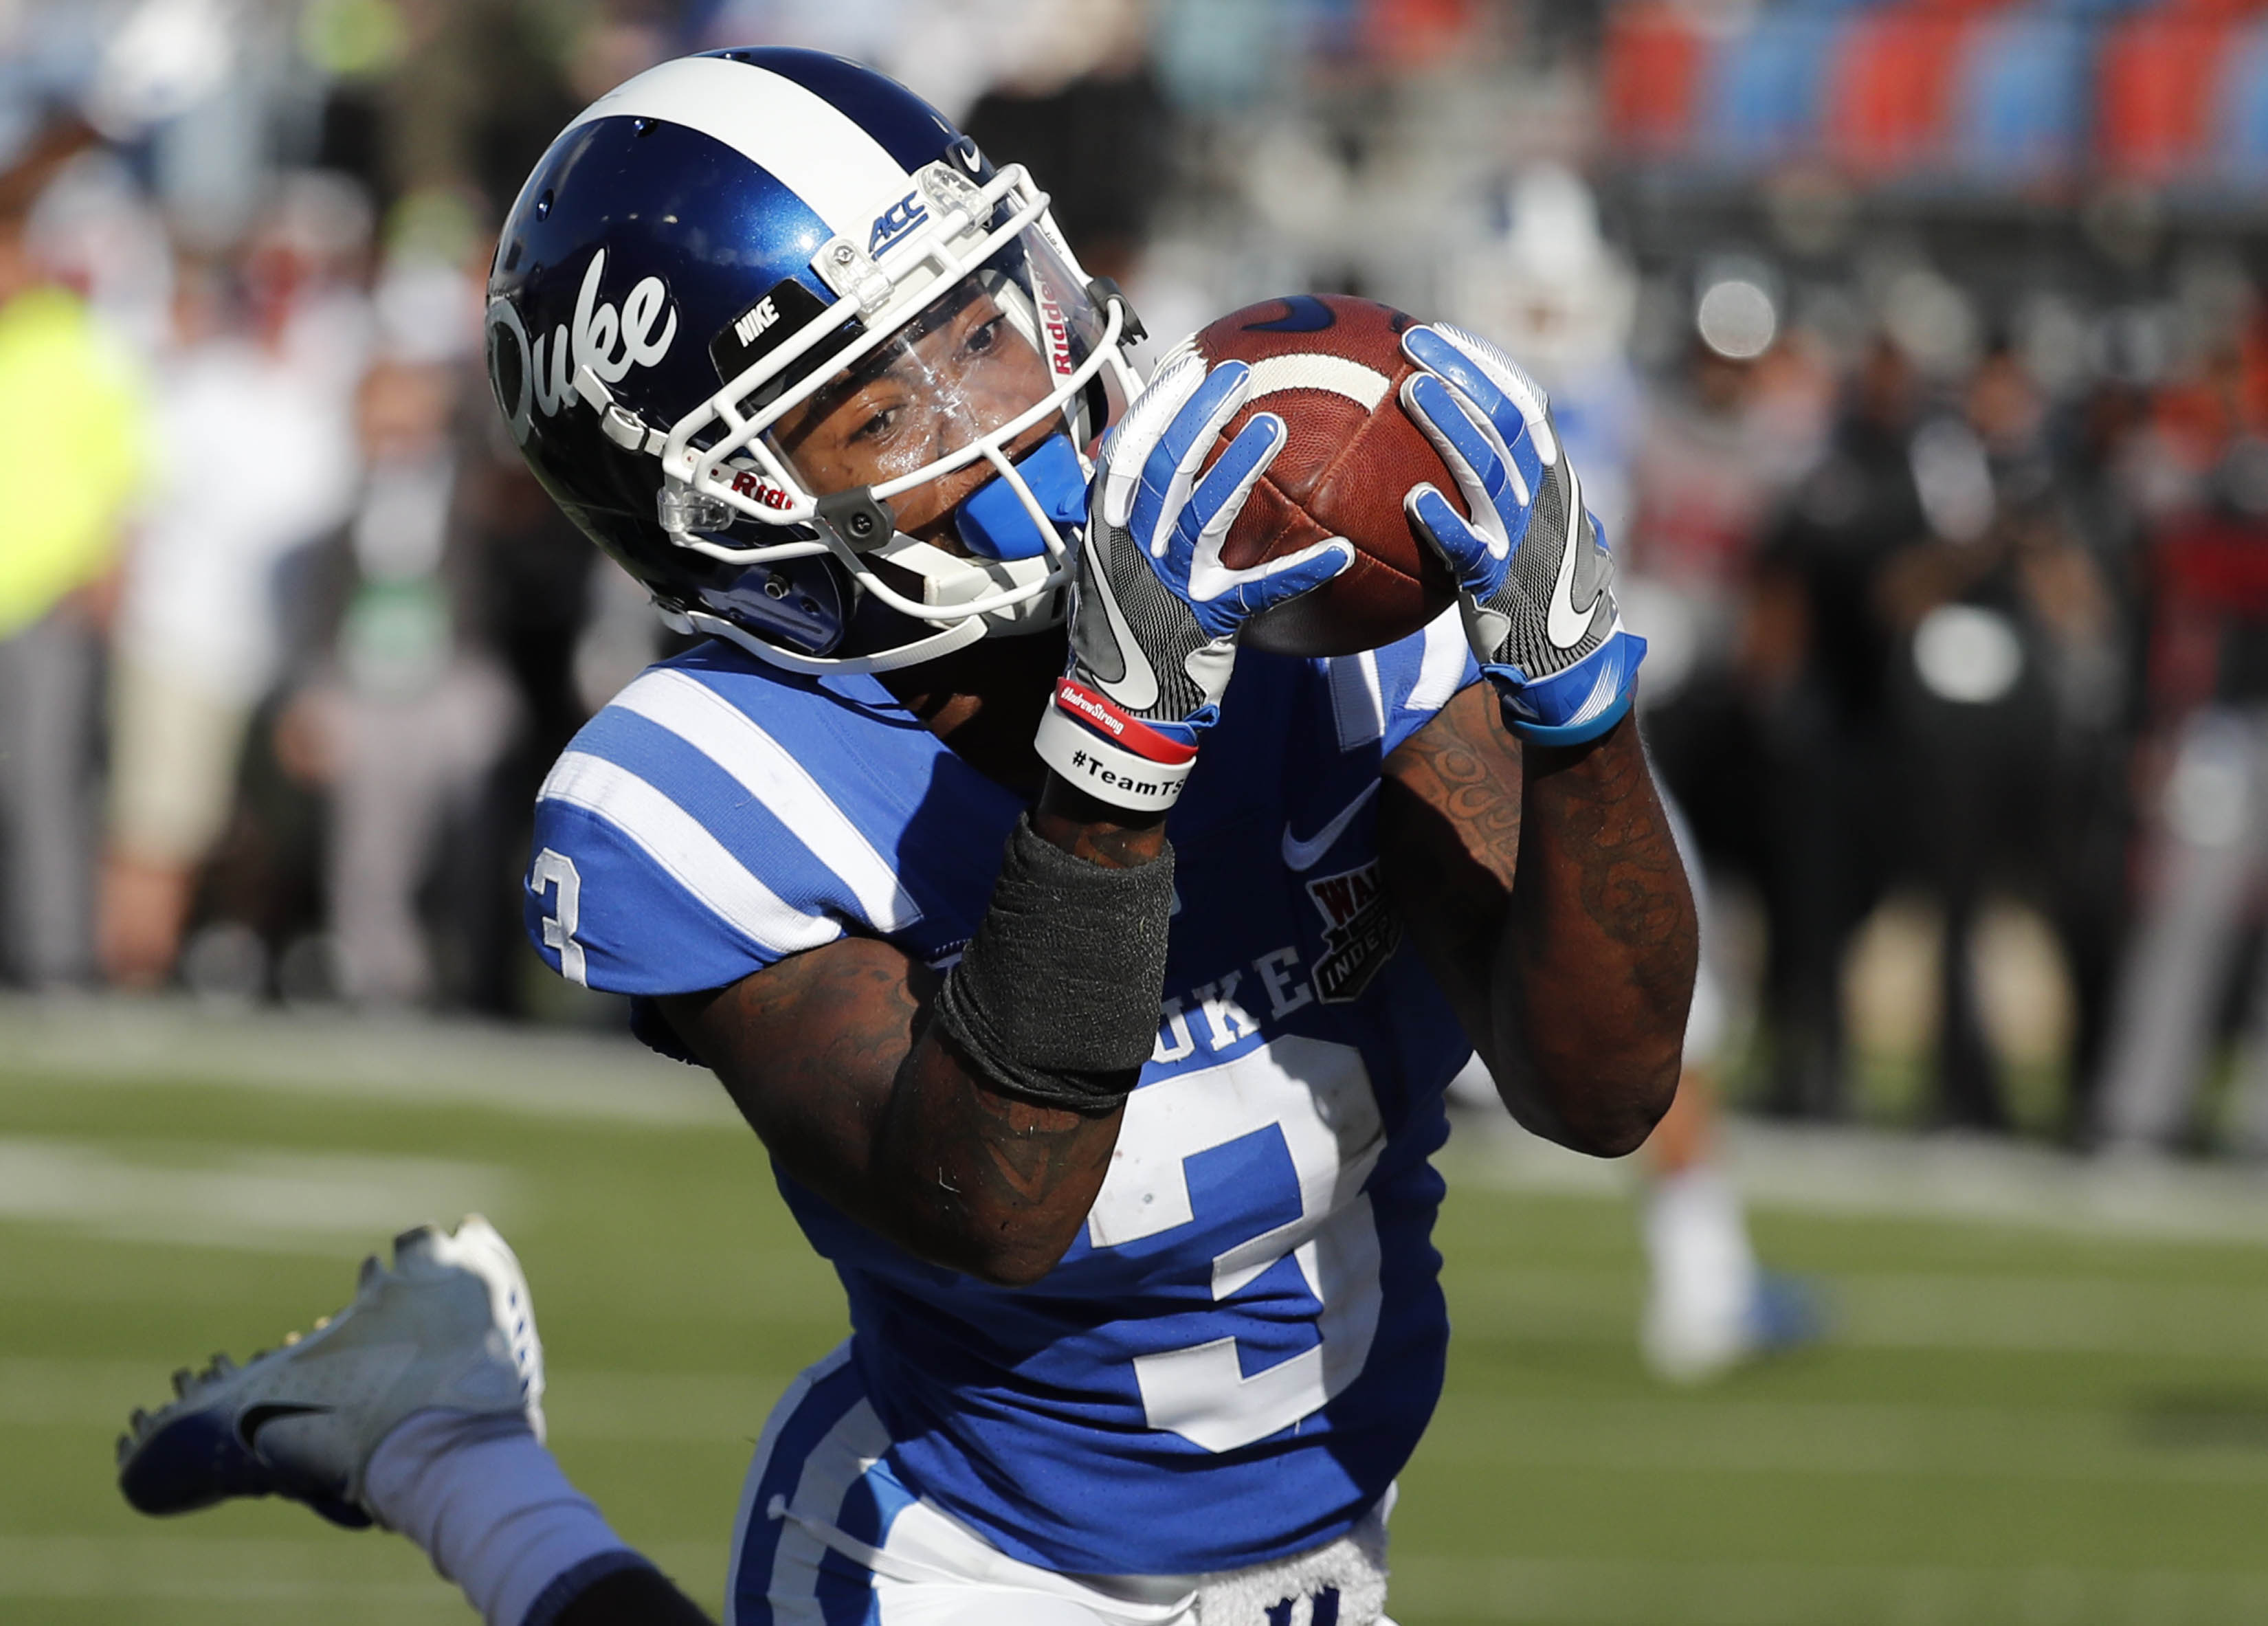 """<div class=""""meta image-caption""""><div class=""""origin-logo origin-image ap""""><span>AP</span></div><span class=""""caption-text"""">Duke wide receiver T.J. Rahming (3) hauls in a touchdown pass reception against Temple during the first half of the Independence Bowl, (Rogelio V. Solis)</span></div>"""